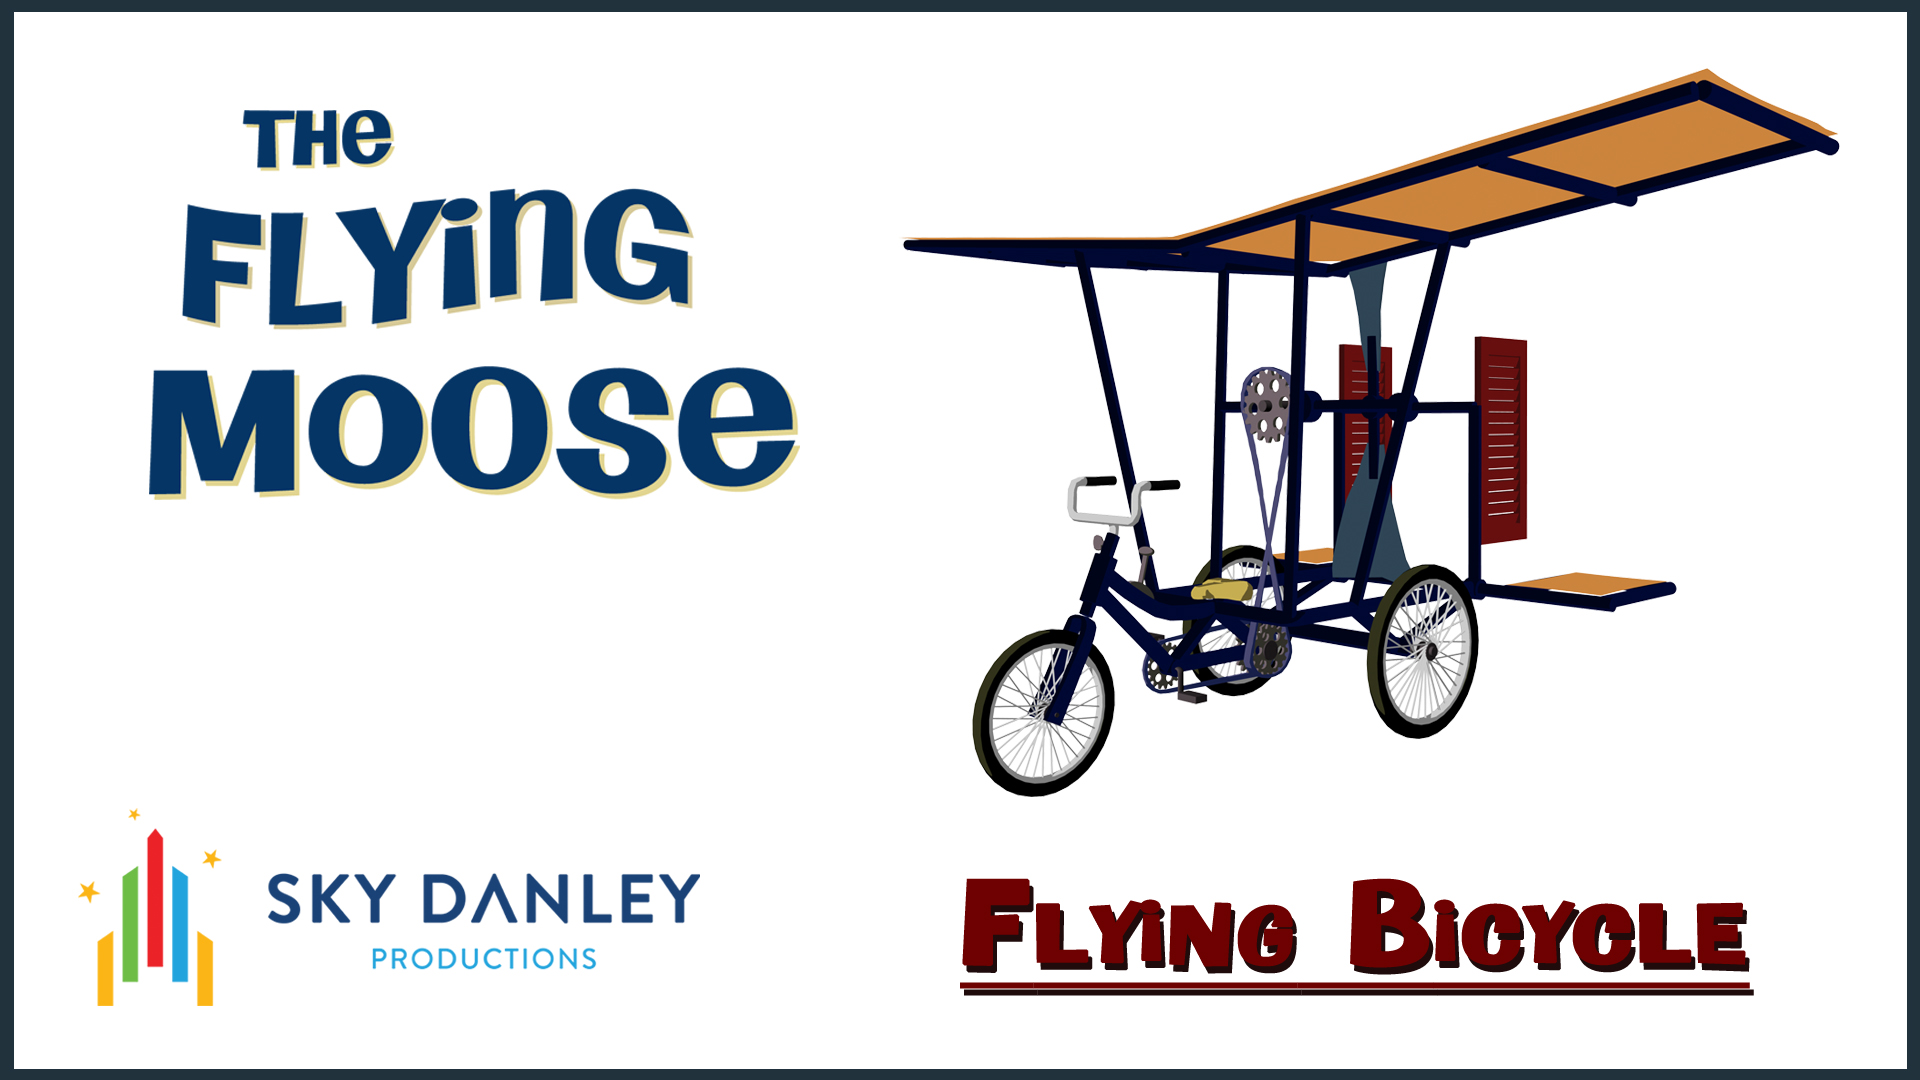 Flying Bicycle prop from THE FLYING MOOSE cartoon